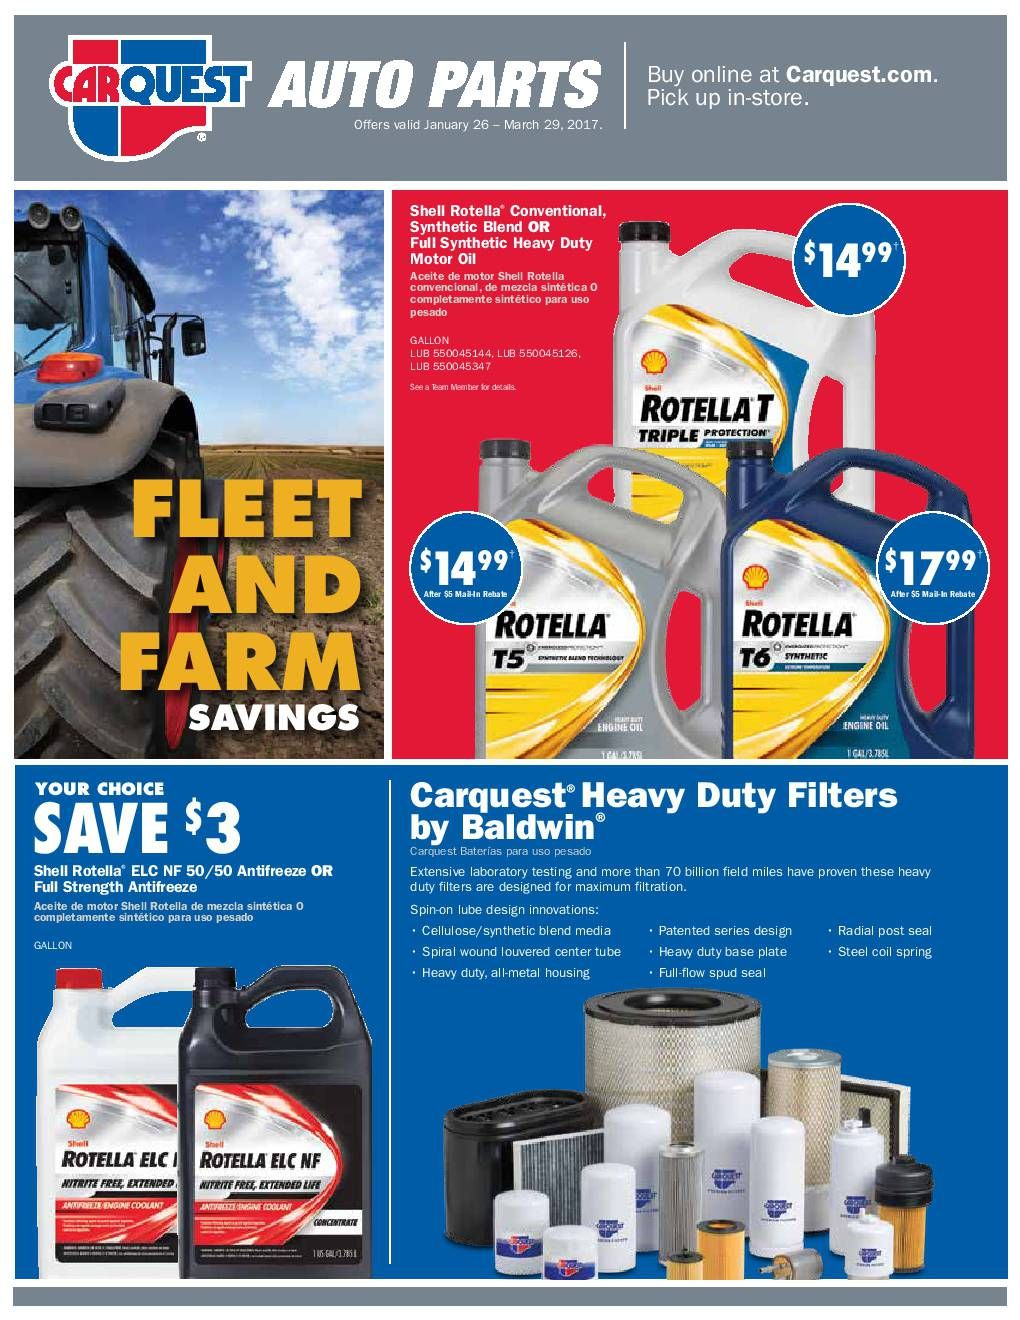 Carquest auto parts january 26 march 2017 do you know what s in and what s hot in the carquest parts for this week latest best carquest auto part deals